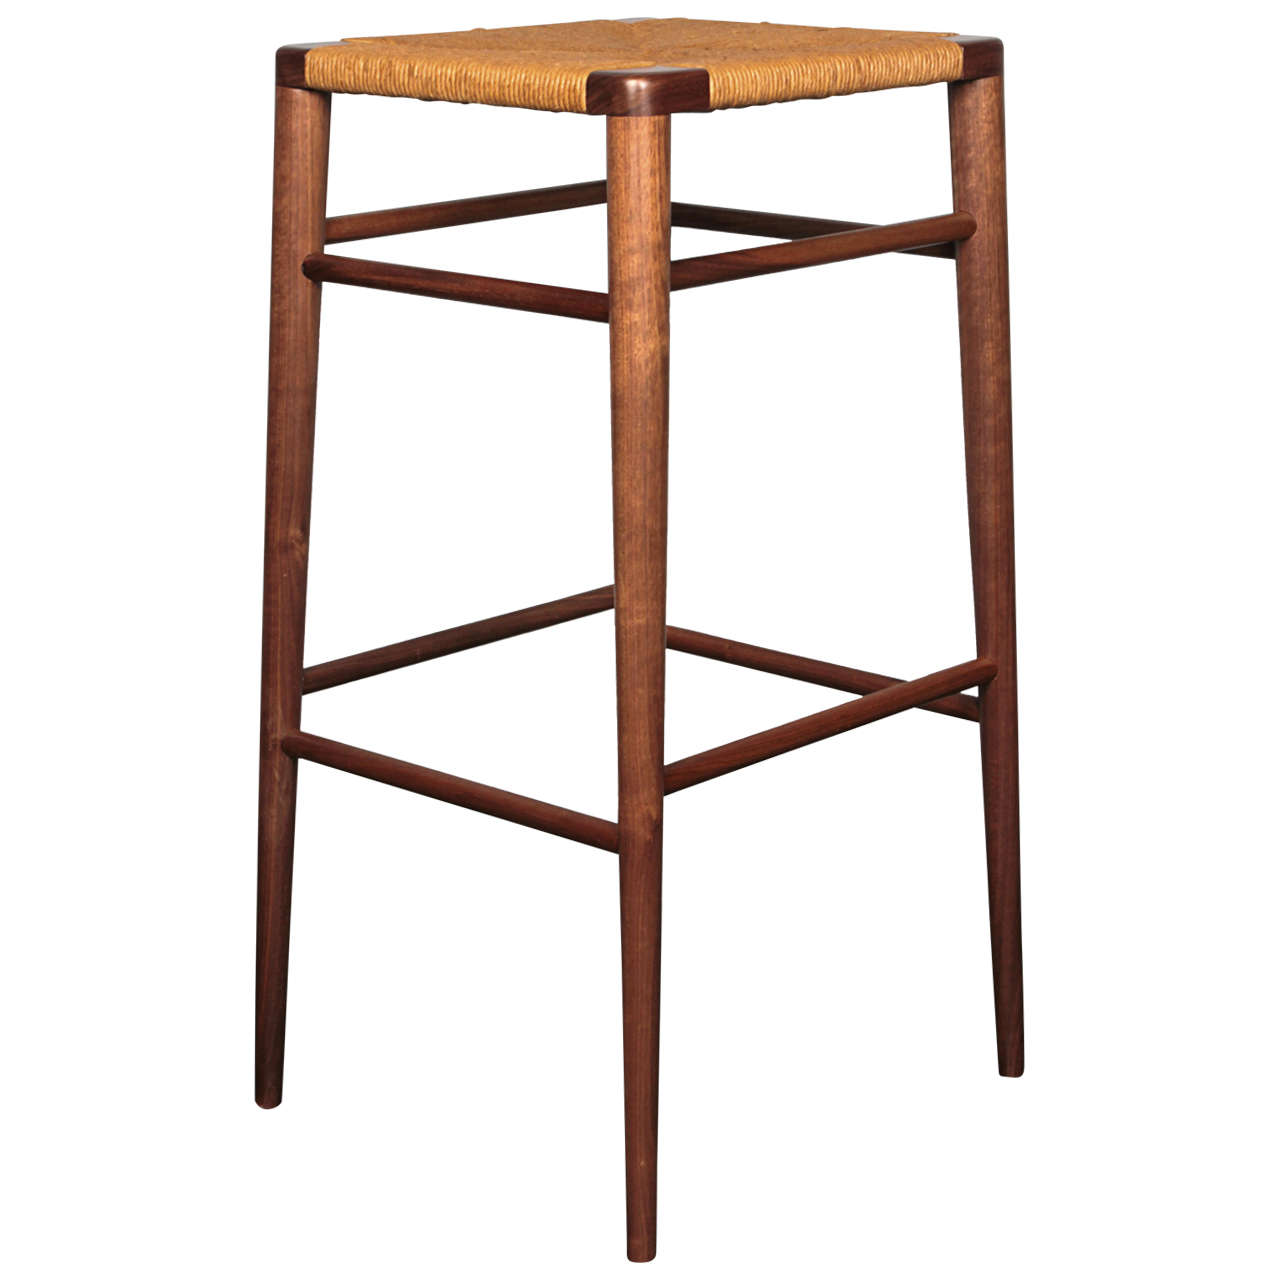 Smilow Furniture, Walnut and Rush Bar Stool For Sale at 1stdibs